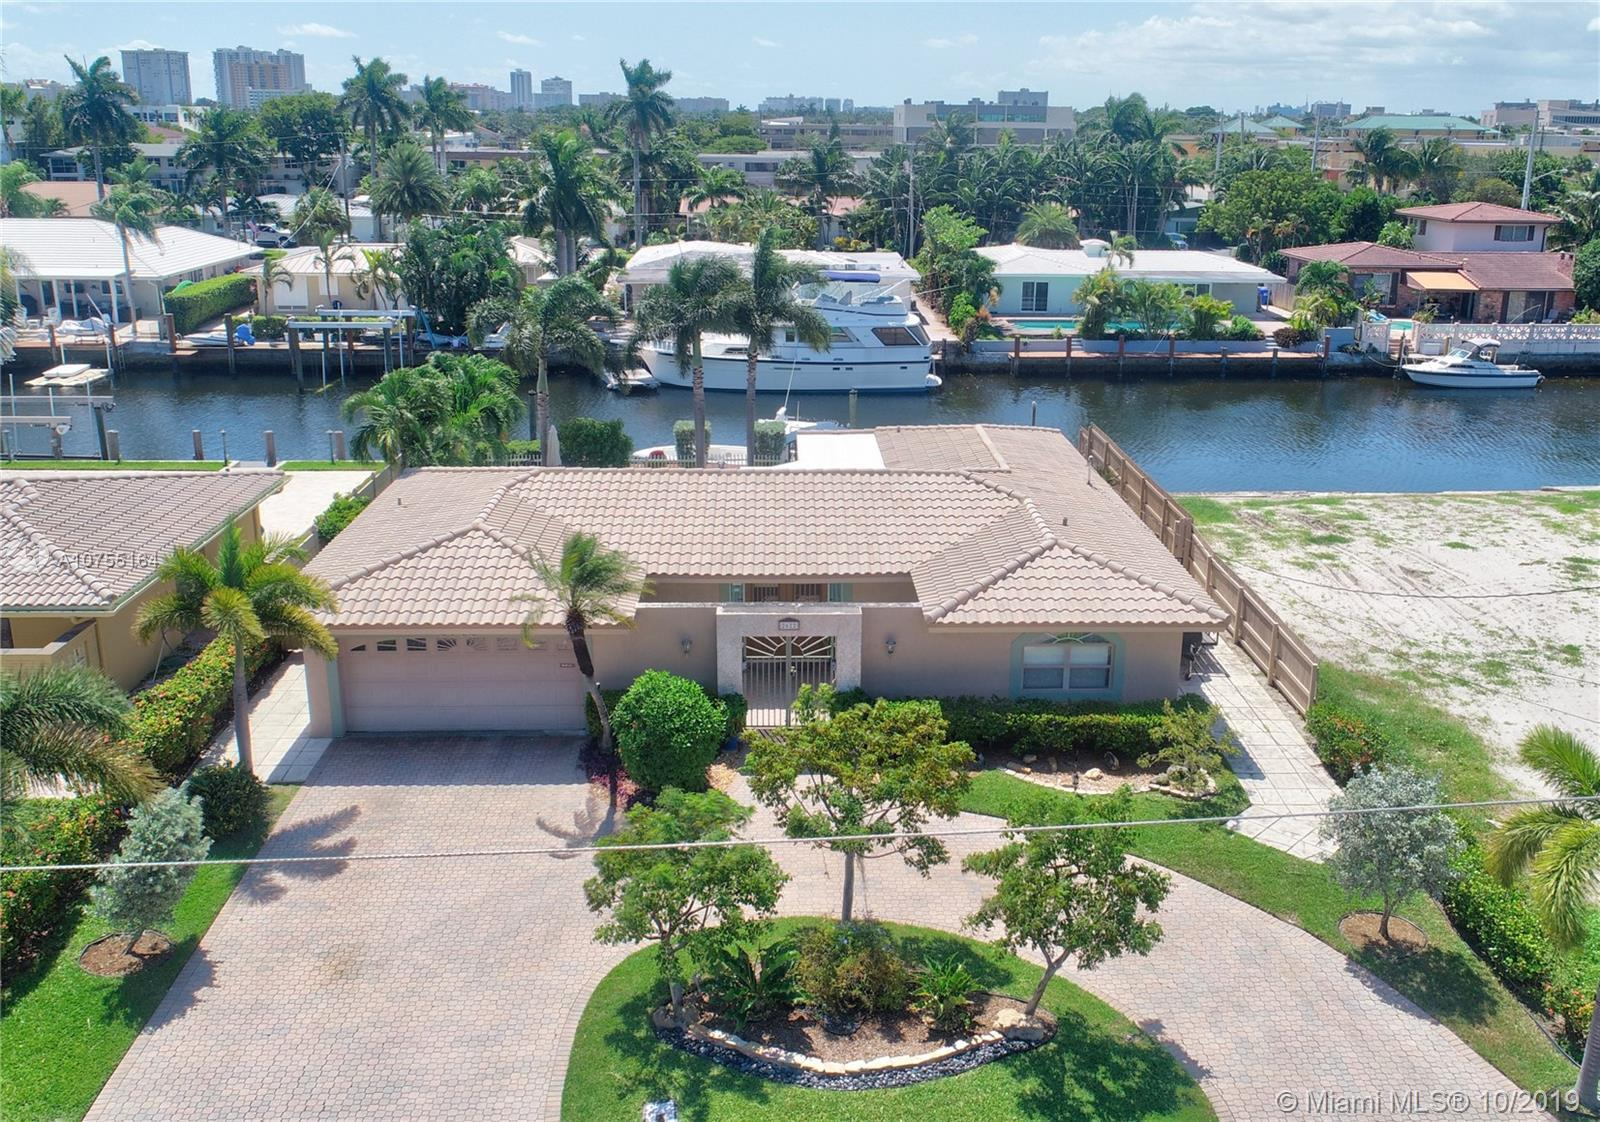 Harbor Village waterfront pool home offers 3 bedrooms, 2 baths, indoor laundry, 2 car garage.  Prefe